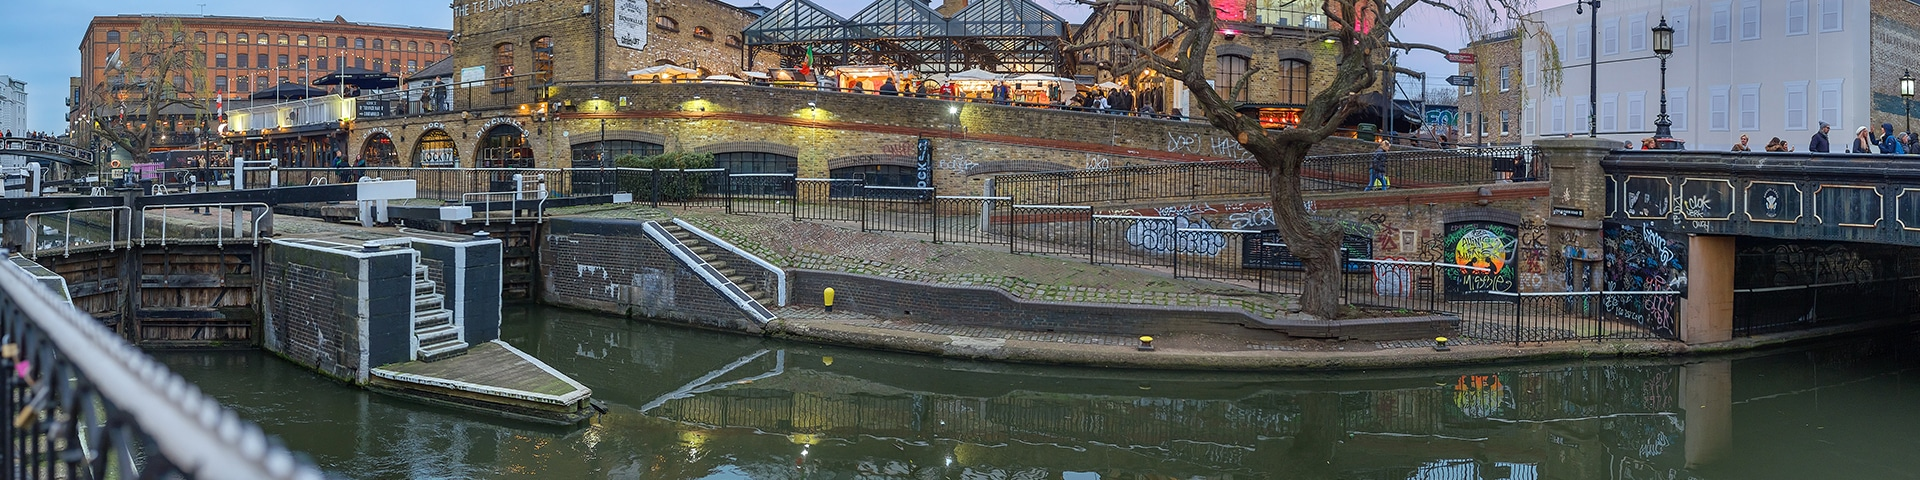 Regent's Canal from Edgware Road to Camden Town walk is one of the best walks in London, England